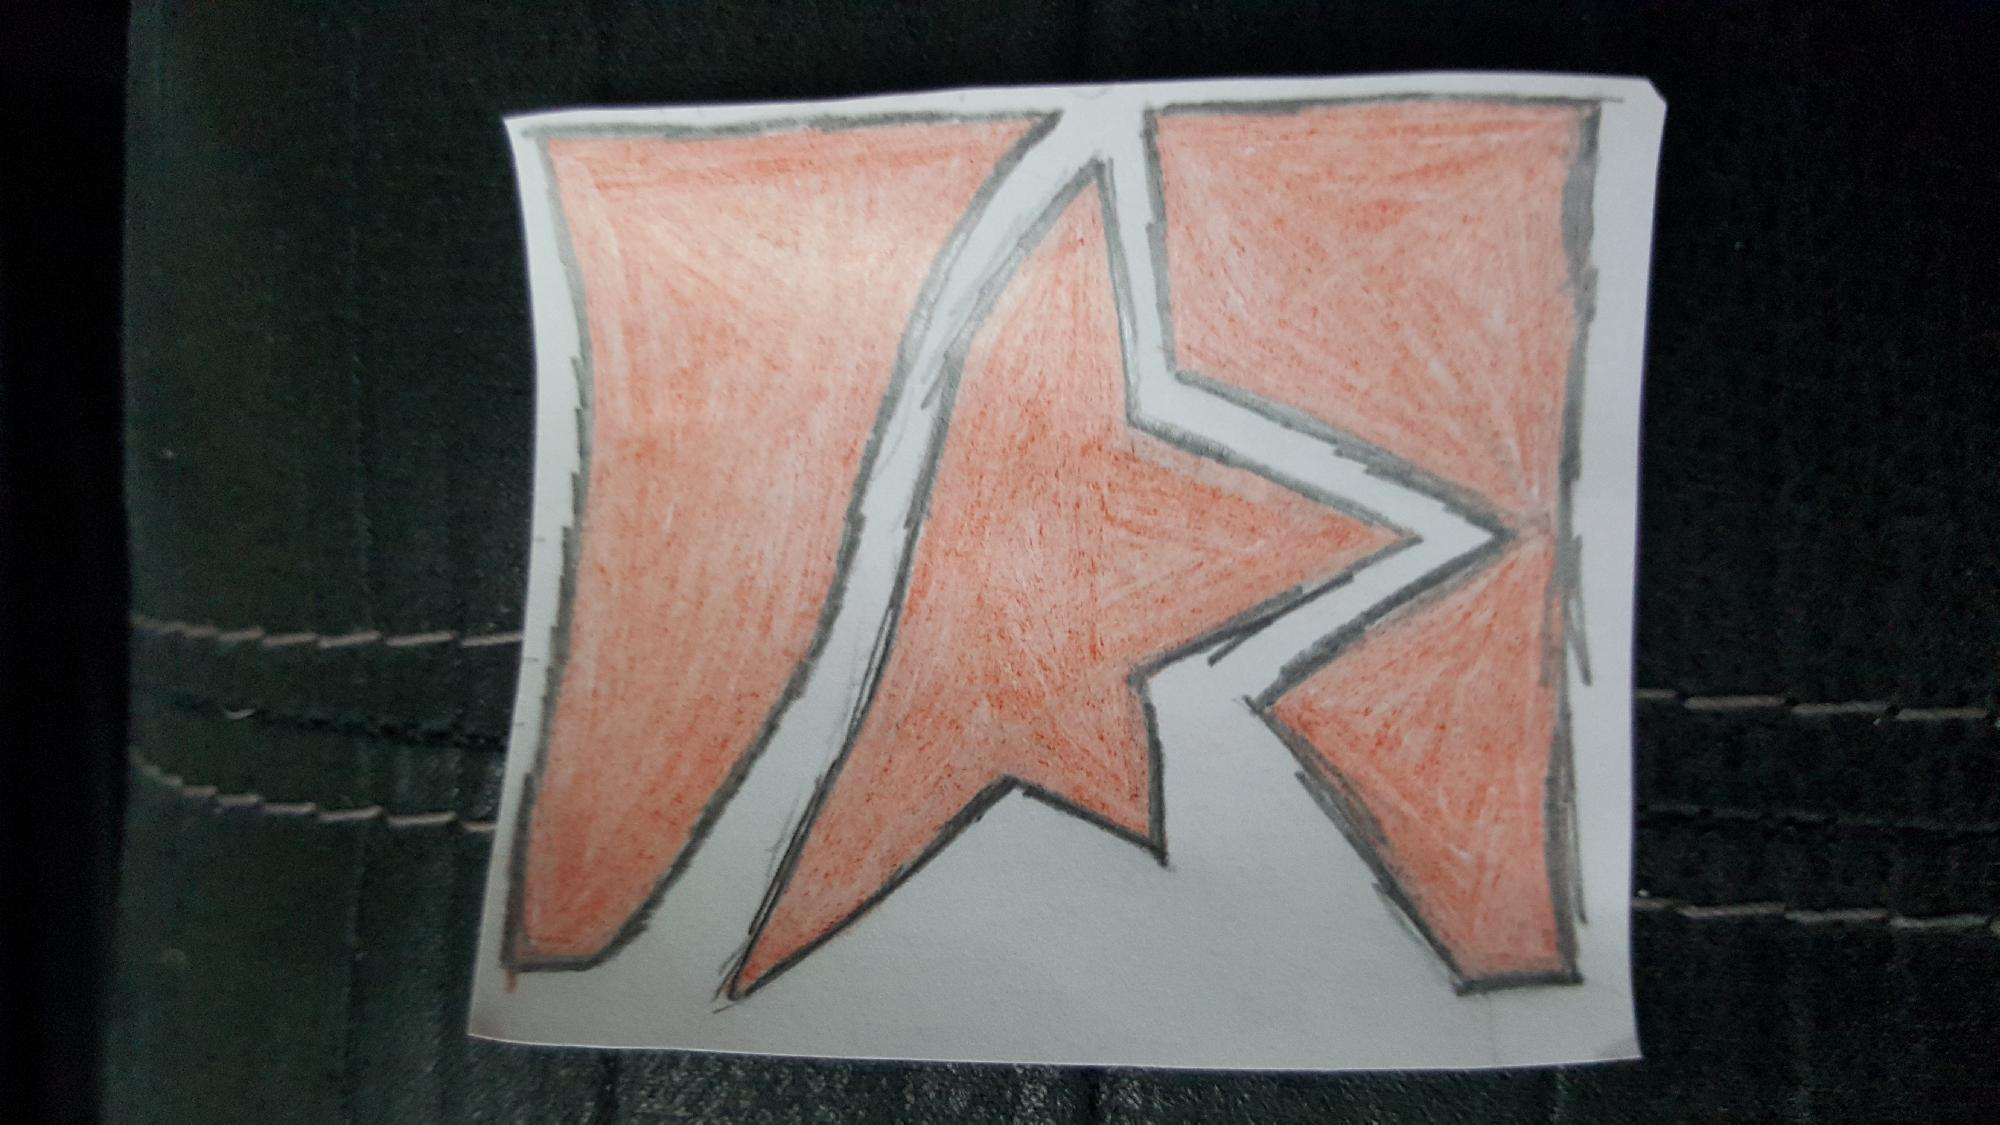 Runner's Emblem Drawing